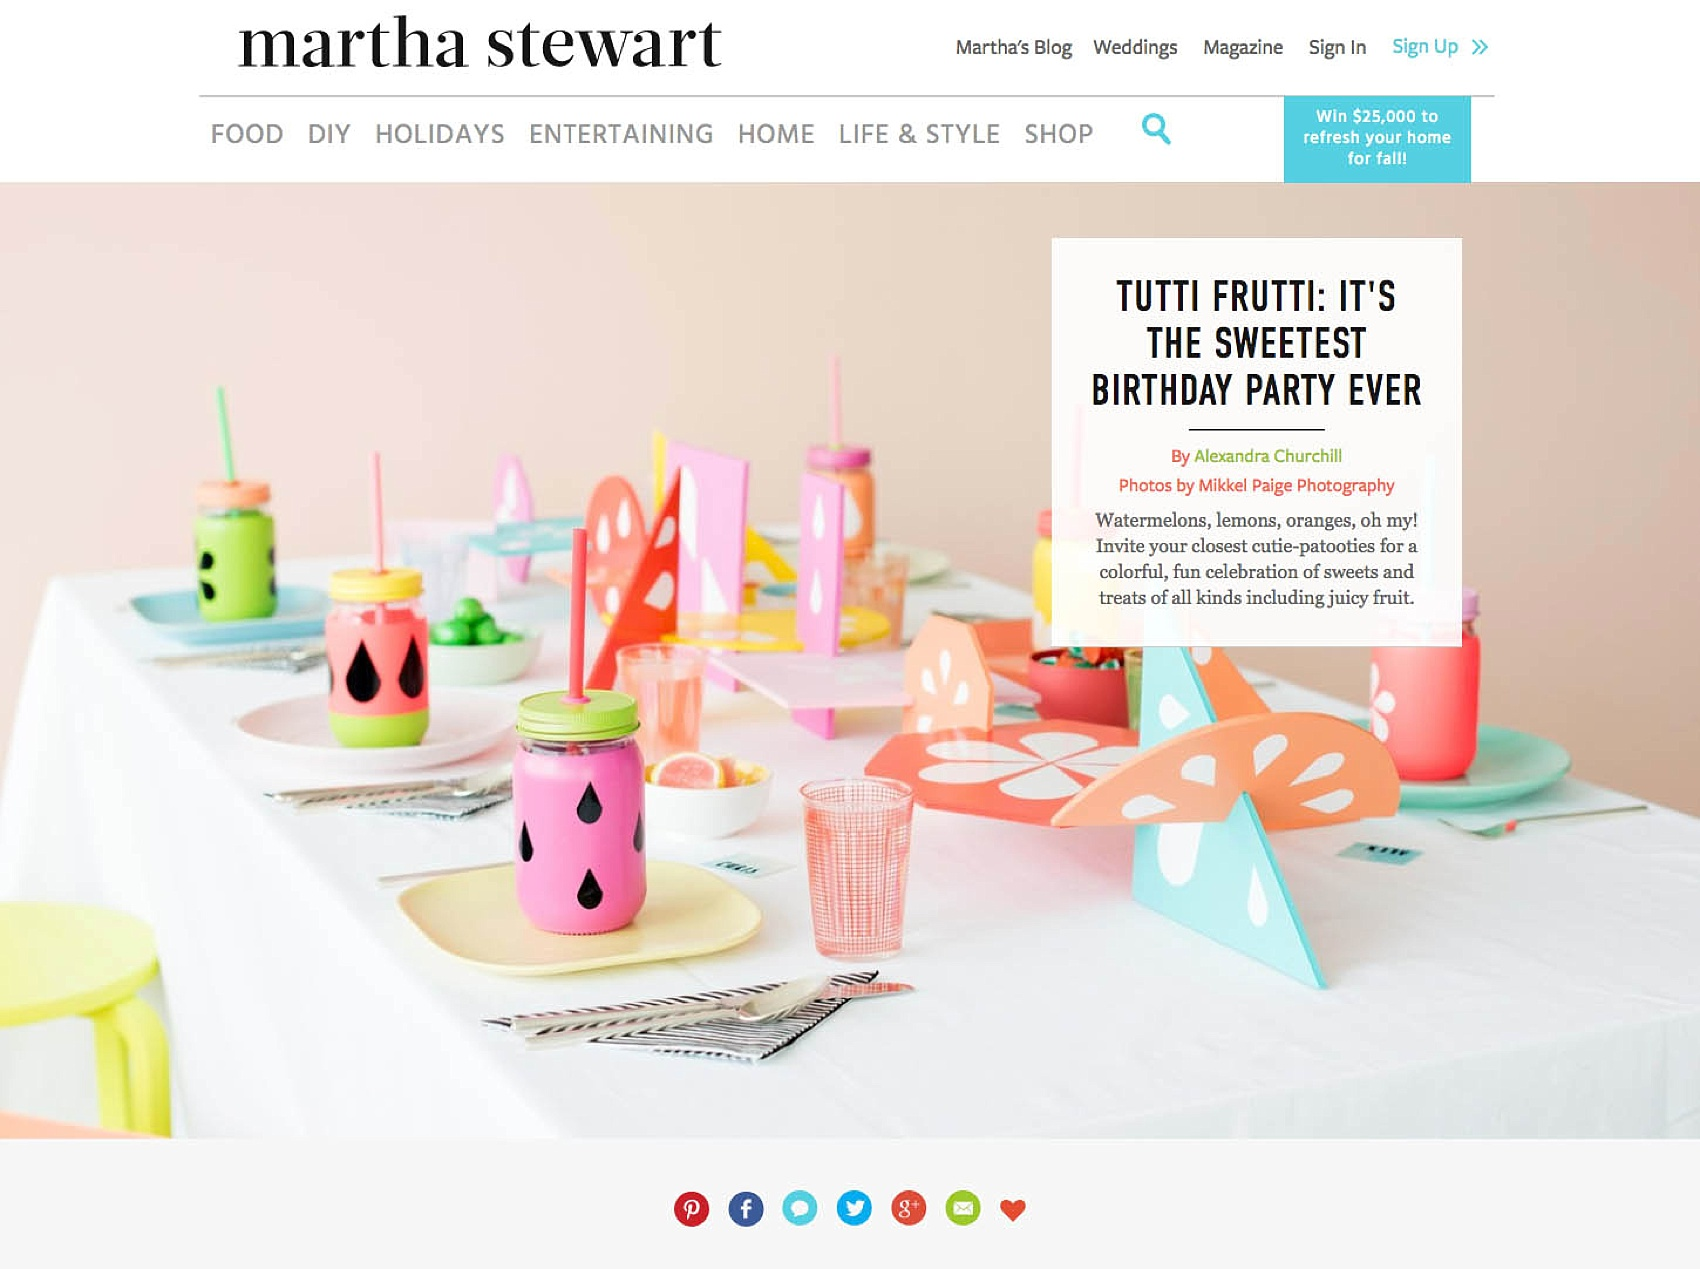 Colorful Tutti Frutti Party on Martha Stewart